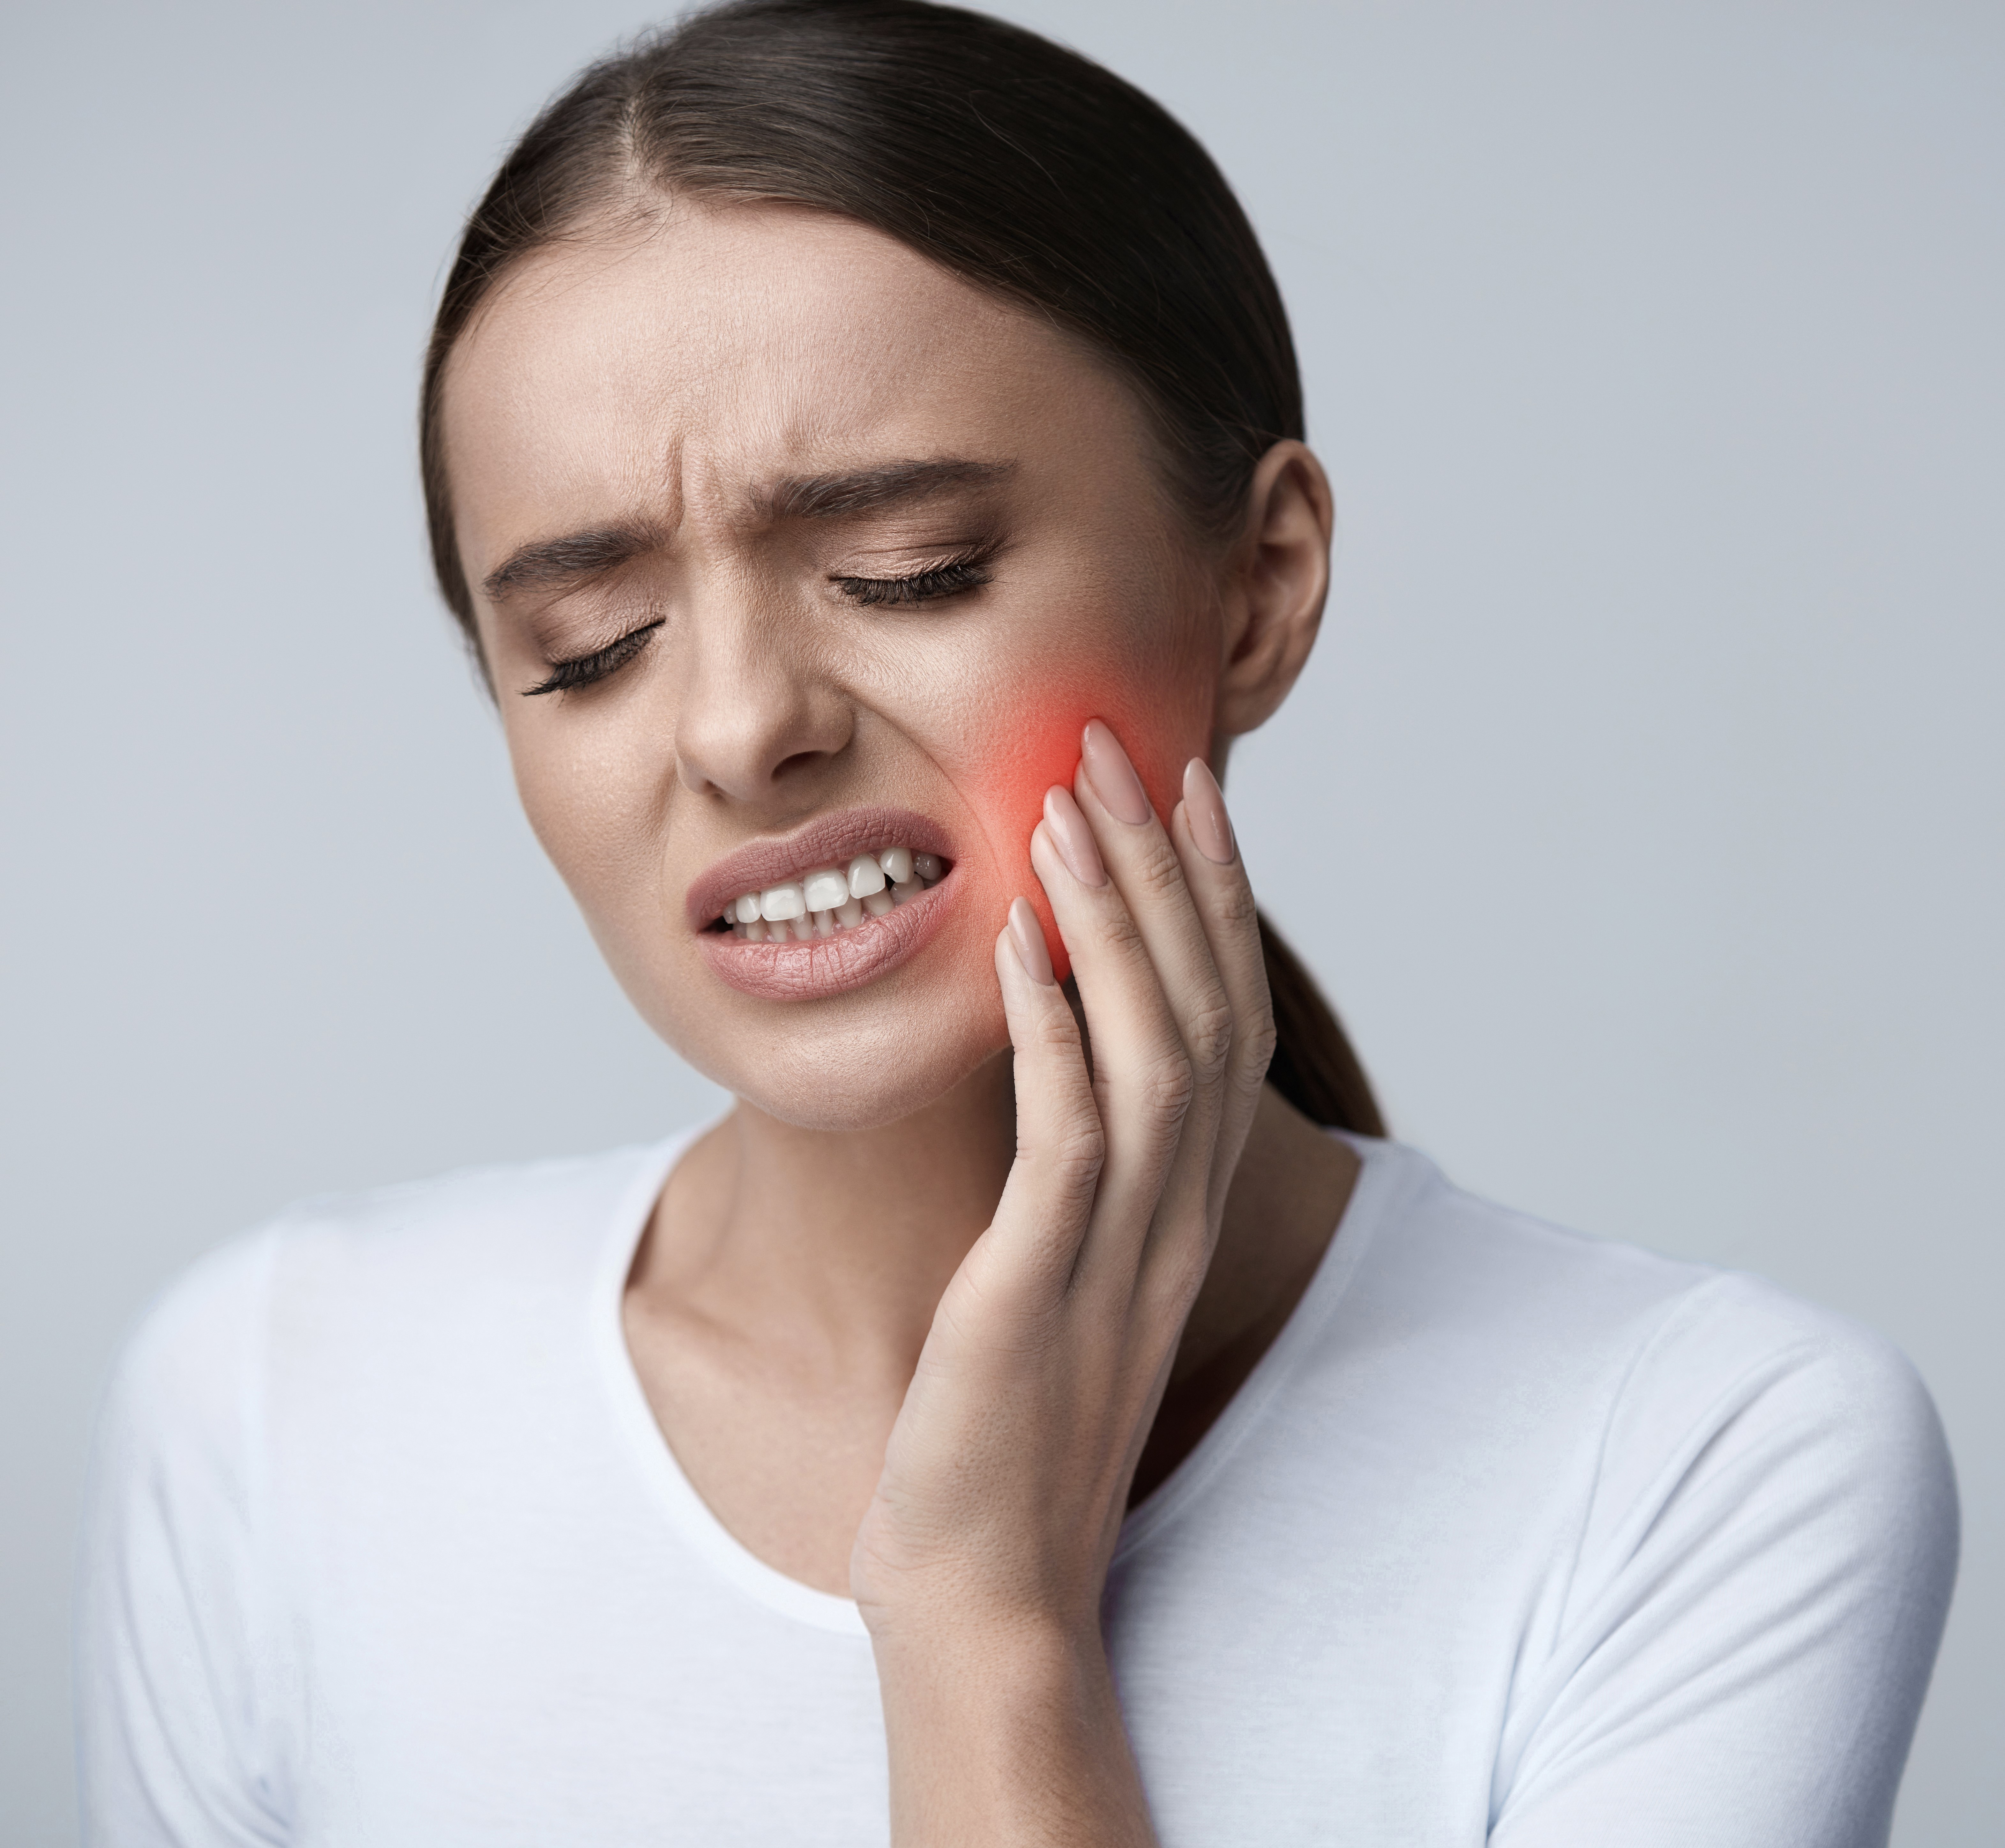 Girl feeling dental pain